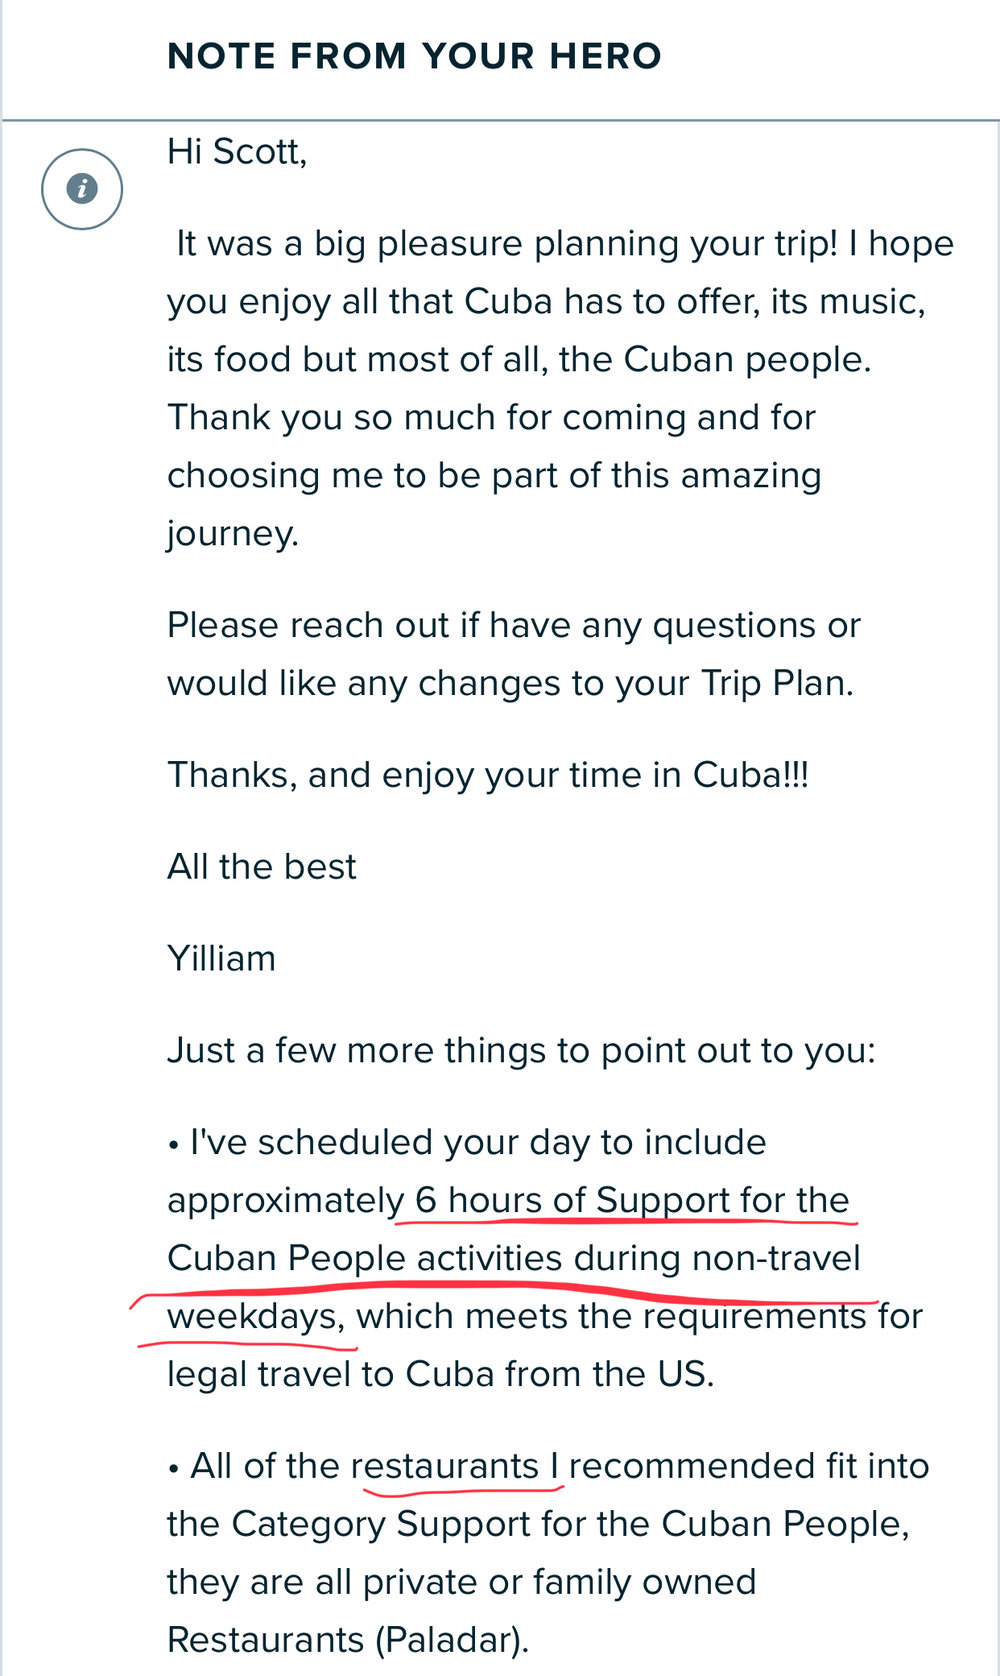 ViaHero - You could build your own itinerary to prove your compliance with the Support for the Cuban People requirement, but I recommend using ViaHero to ensure you are covered. You work with a local person (a Hero who you select- Yilliam was fantastic!) to customize an itinerary with your preferences.The comprehensive itinerary is viewable offline, via an app or pdf, and your Hero is available if any questions arise both before and during your trip.You should save this itinerary and all receipts for 5 years after your trip.The category definition is fairly loose, but basically the activities you partake in should help the Cuban people rather than the government. This includes staying at an AirBnB or casa particular, eating at local restaurants, or taking a tour conducted by a local. The government hotels and restaurants are very pricey and sterile in any case, so this is the best way to experience Cuba.ViaHero Promo Code (5% discount):SHAREFIVE